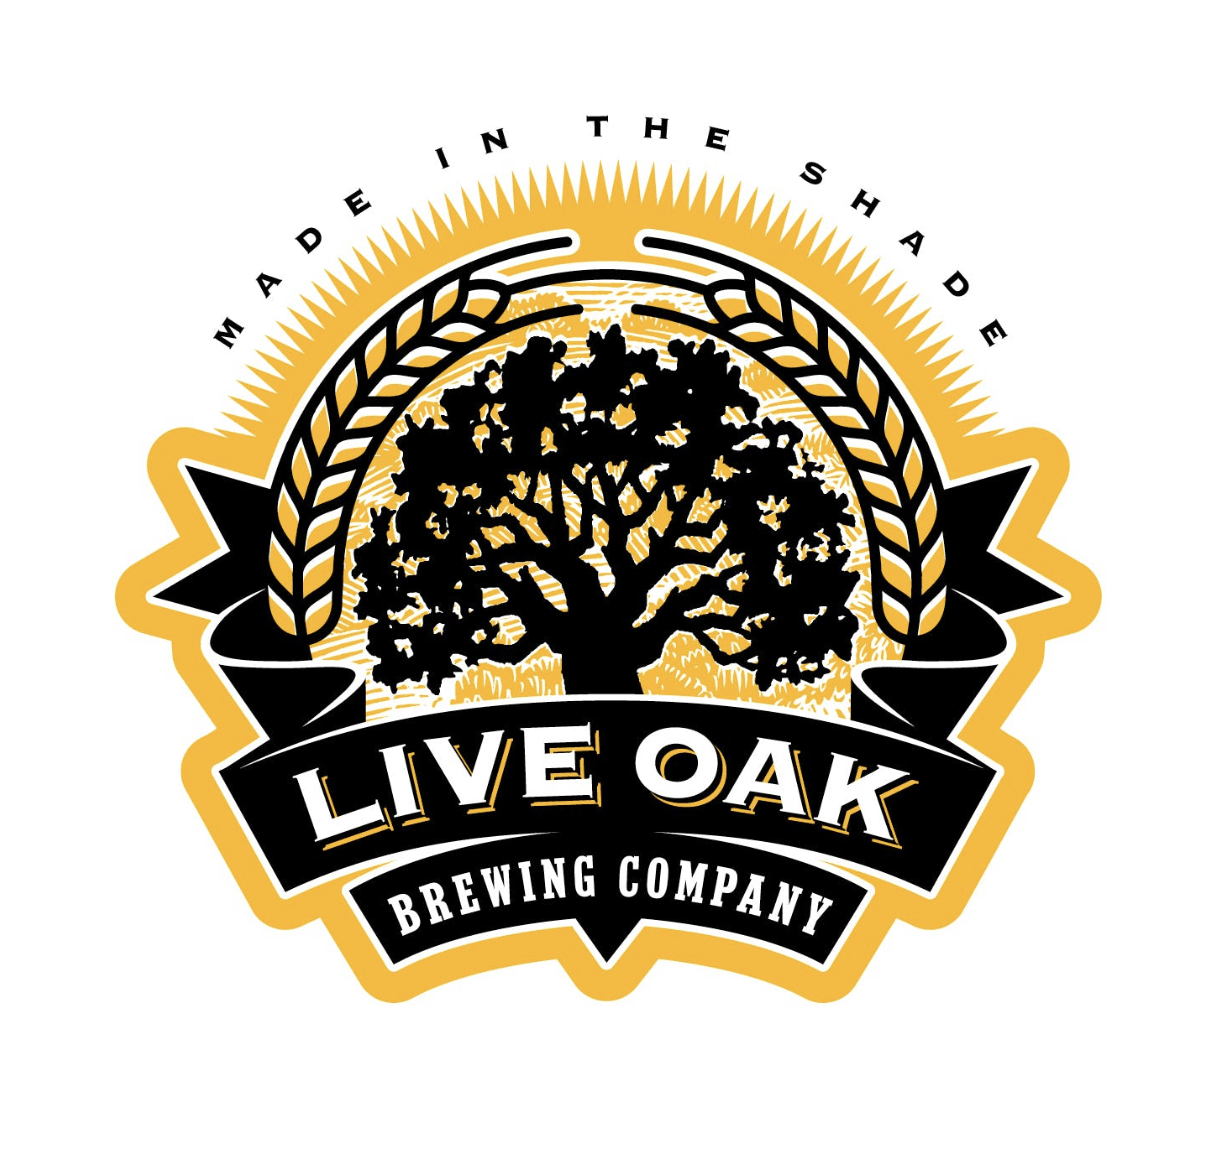 Nature logo - Live Oak Brewing Company